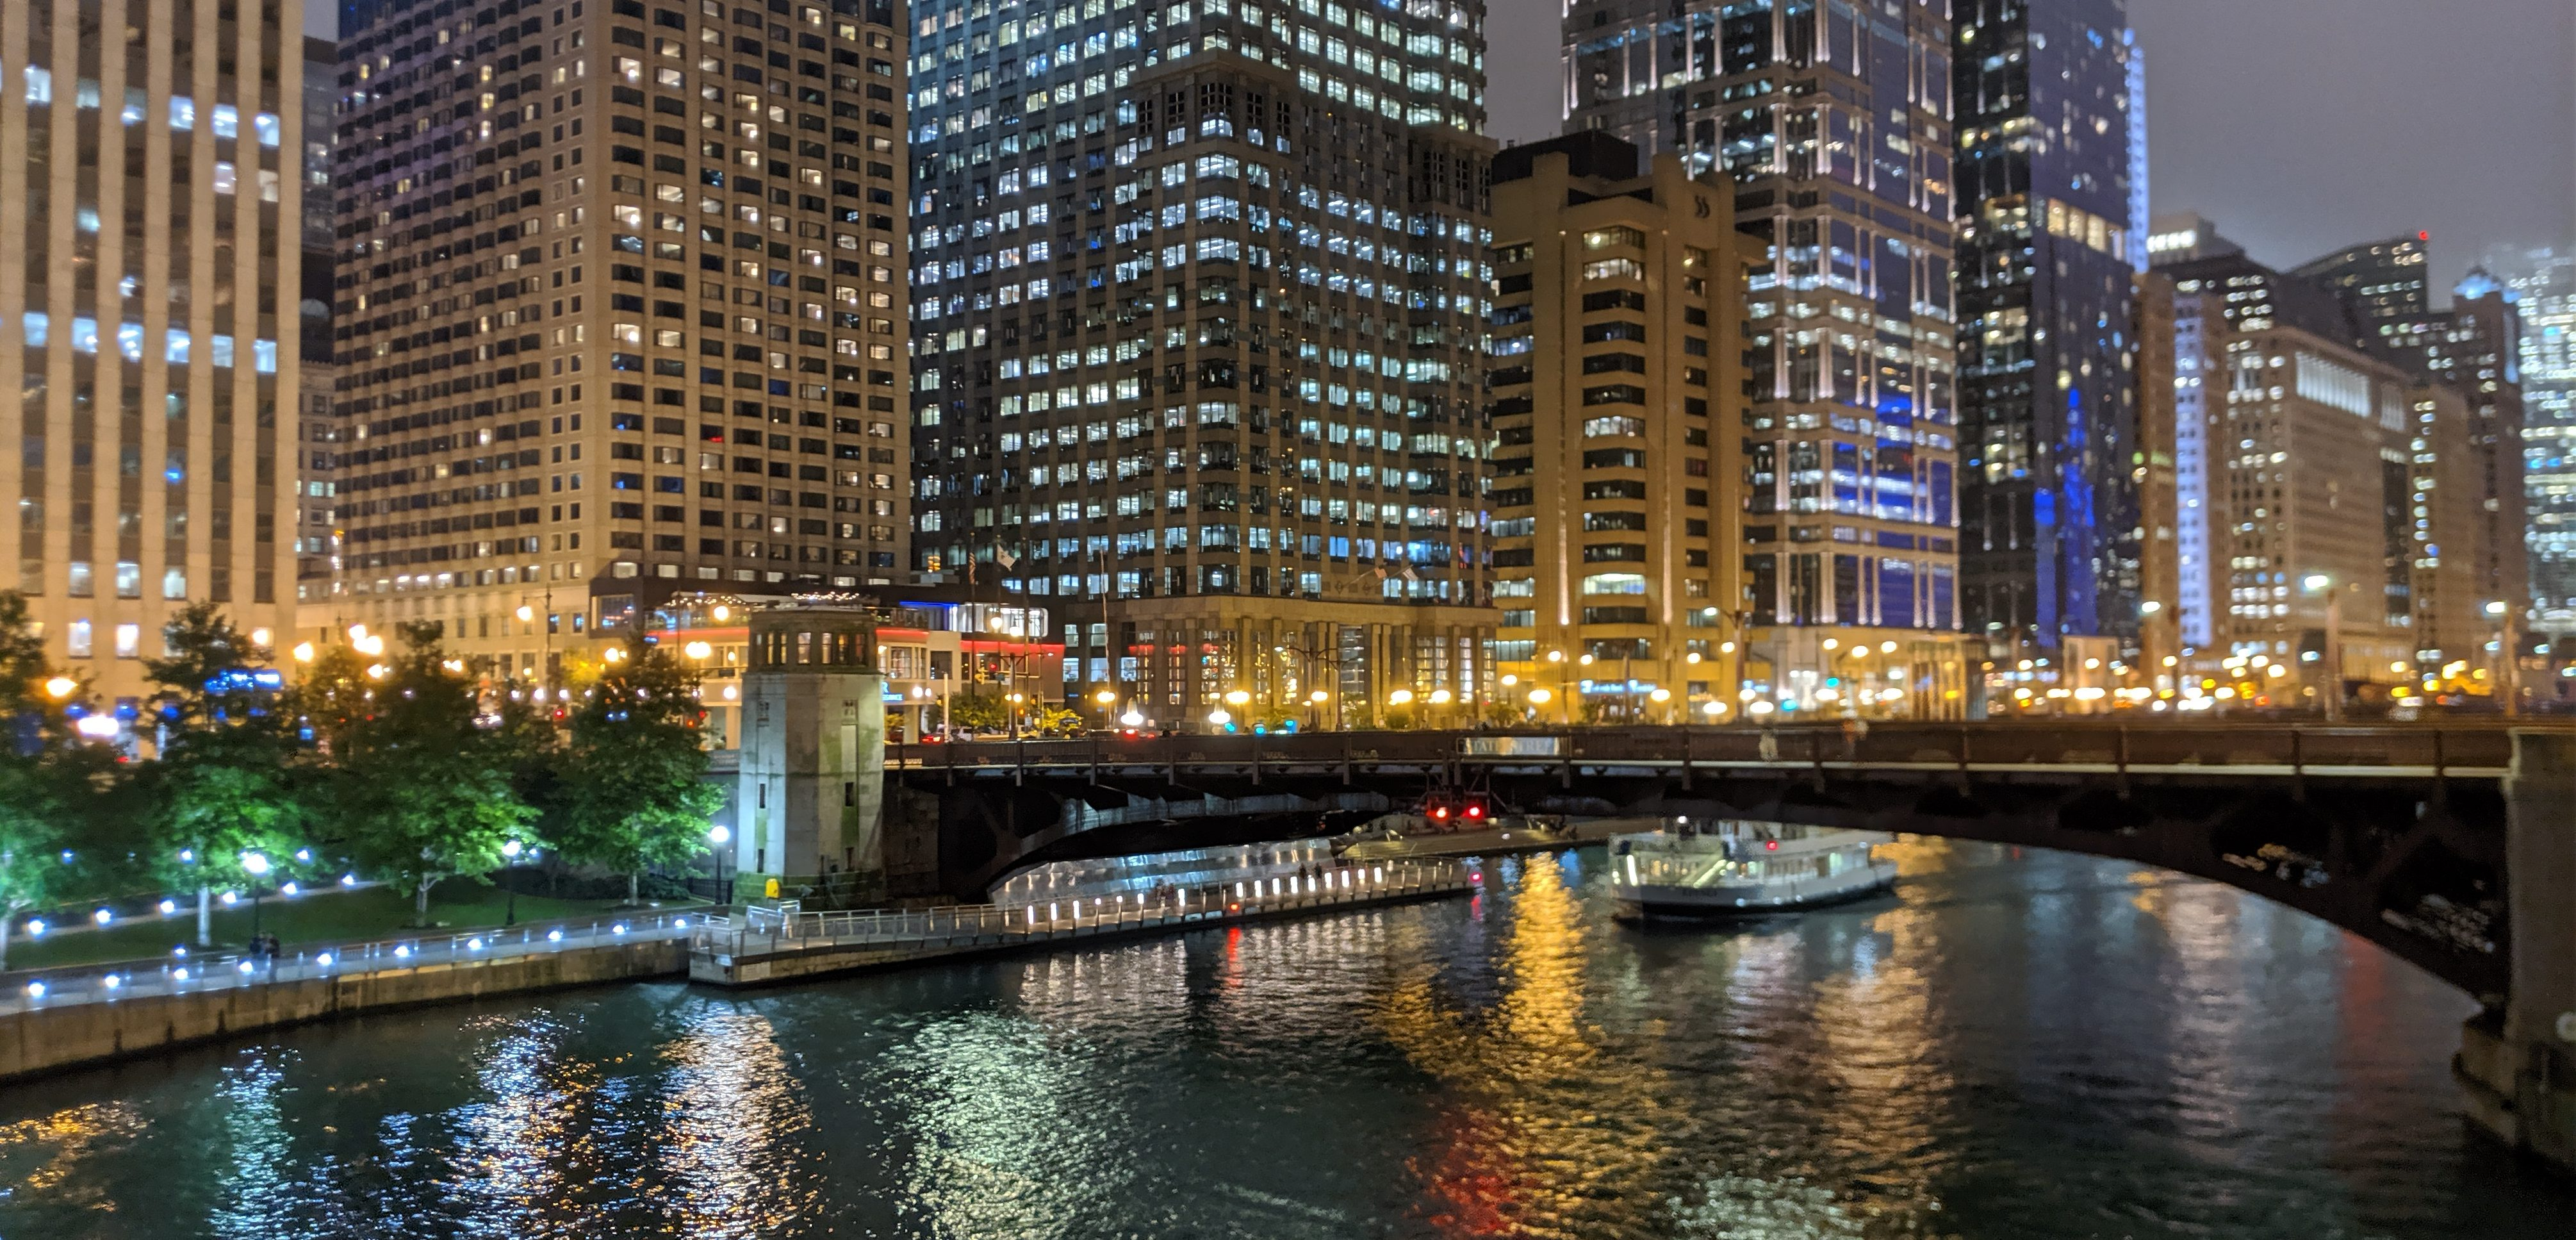 Online Sales and Marketing Summit 2019 in Chicago